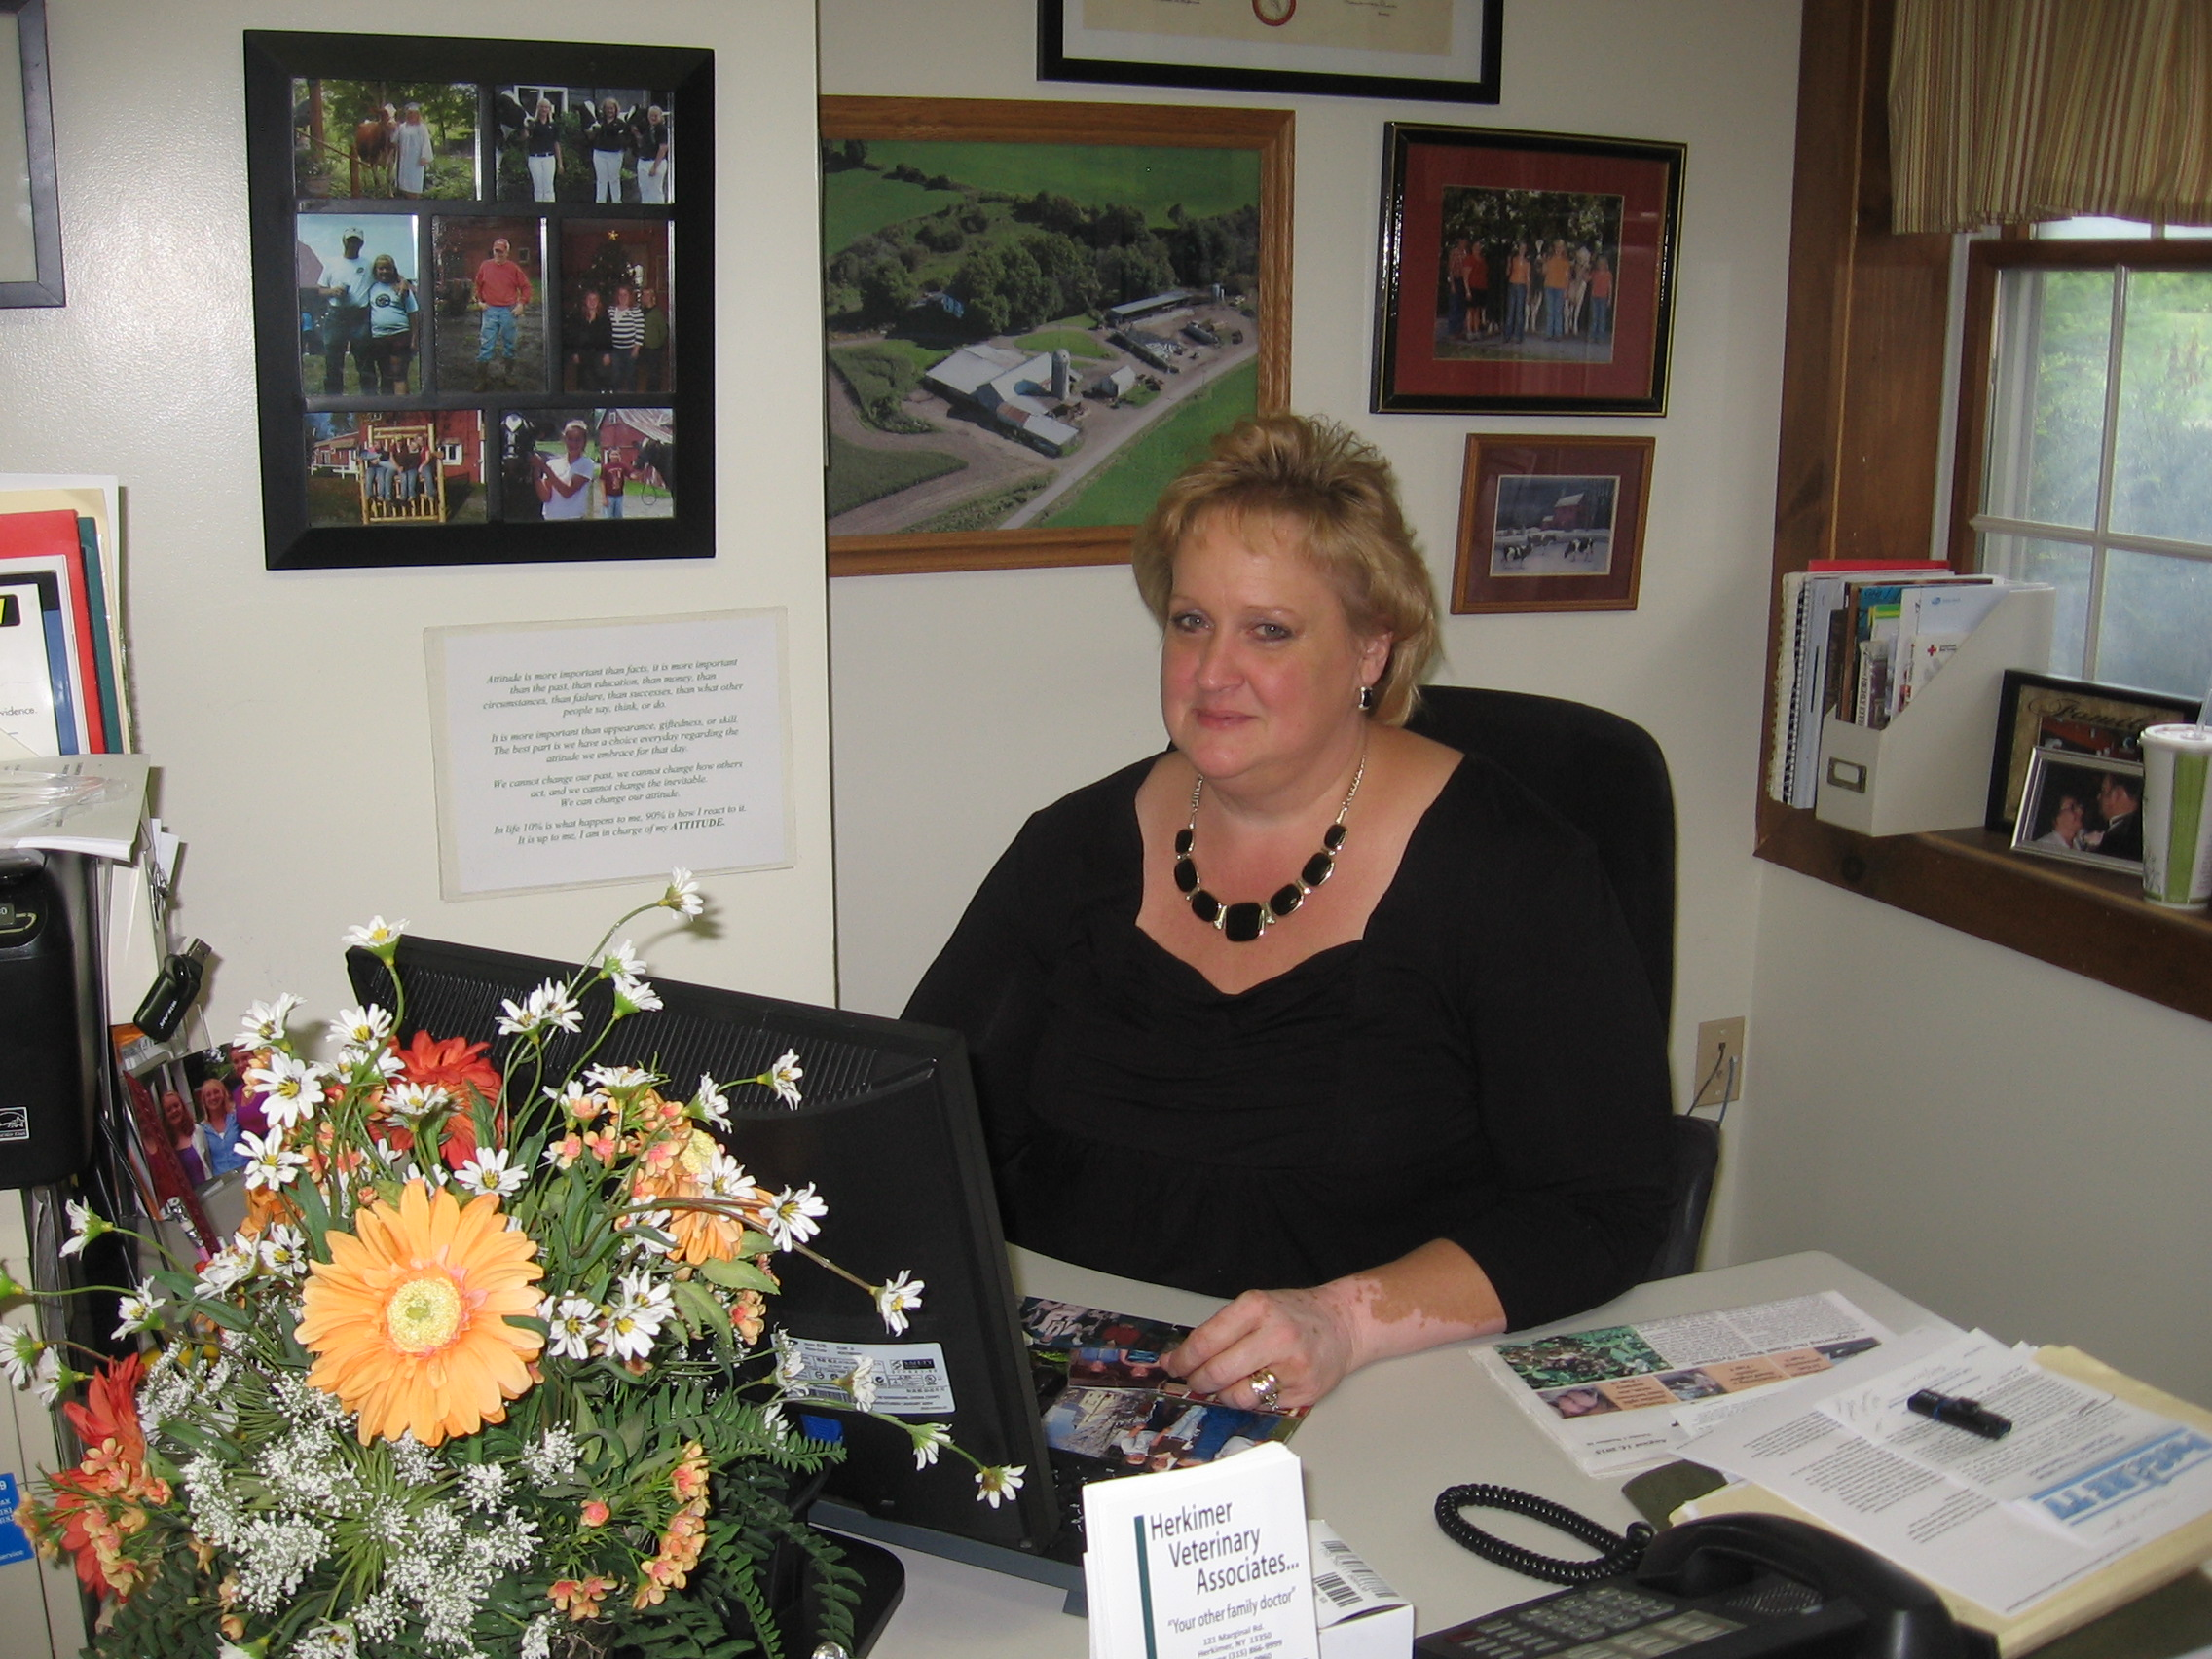 Christine at her desk